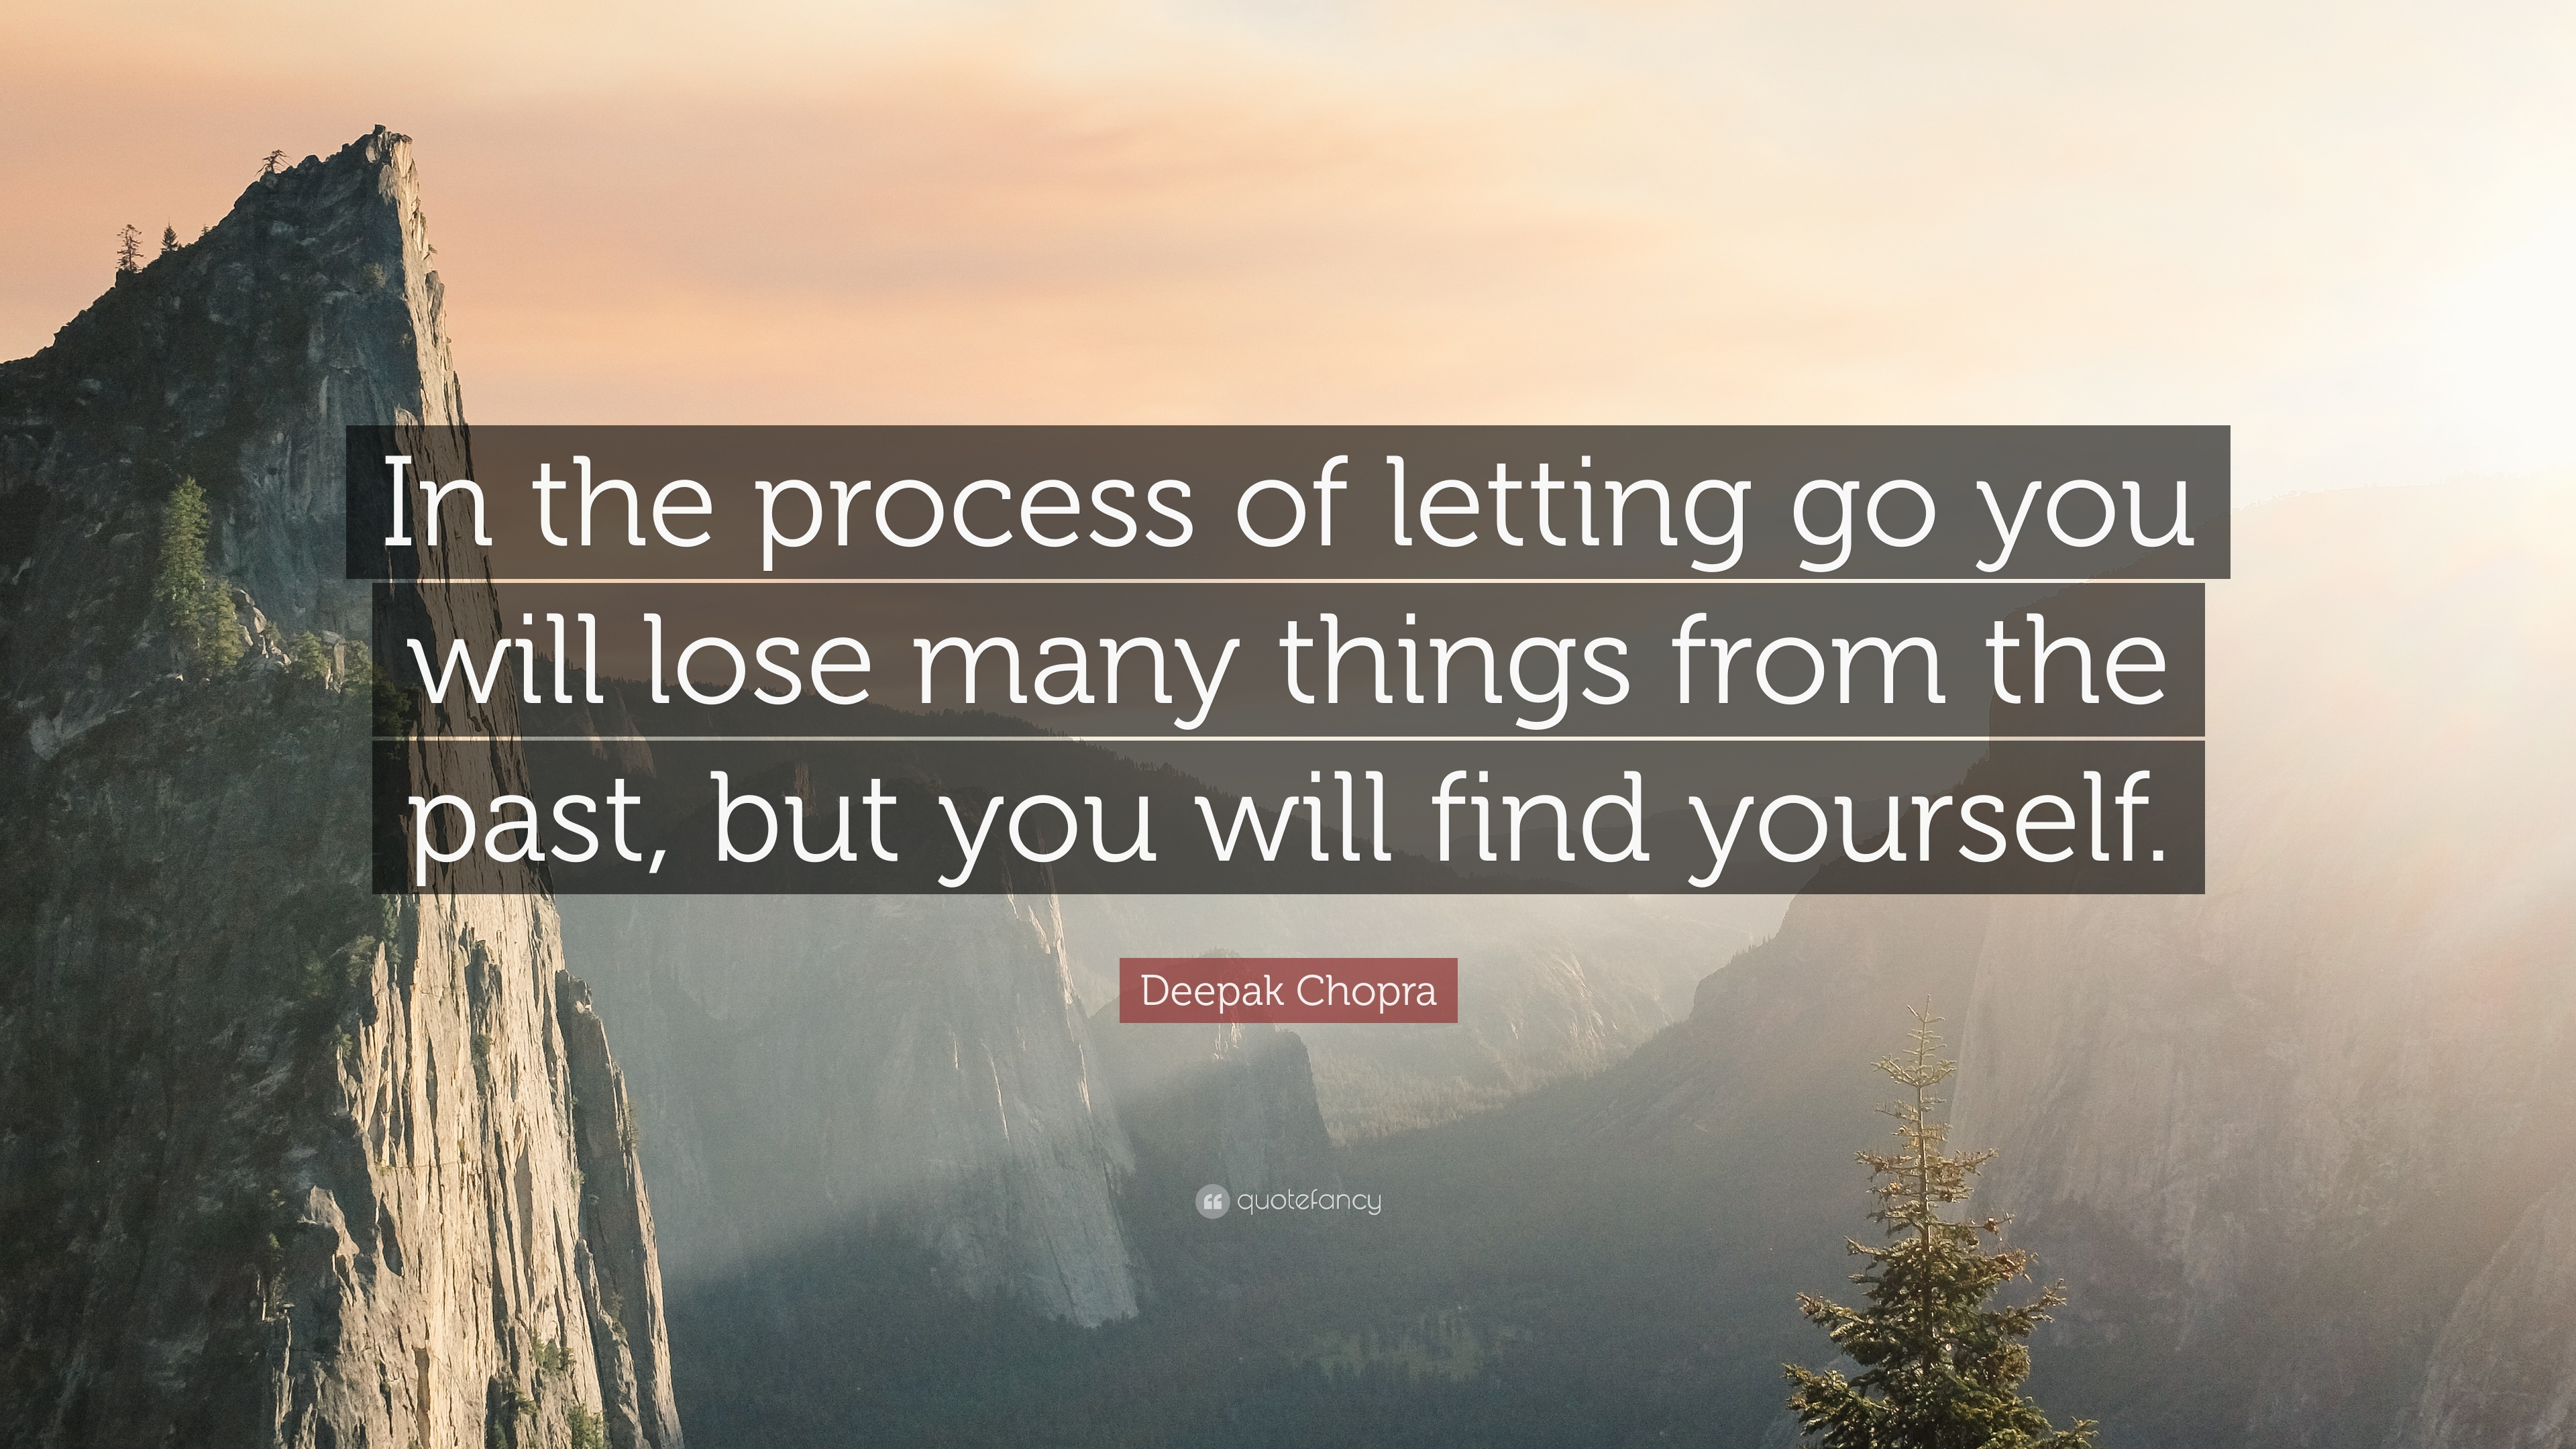 Great Deepak Chopra Quote: U201cIn The Process Of Letting Go You Will Lose Many Things